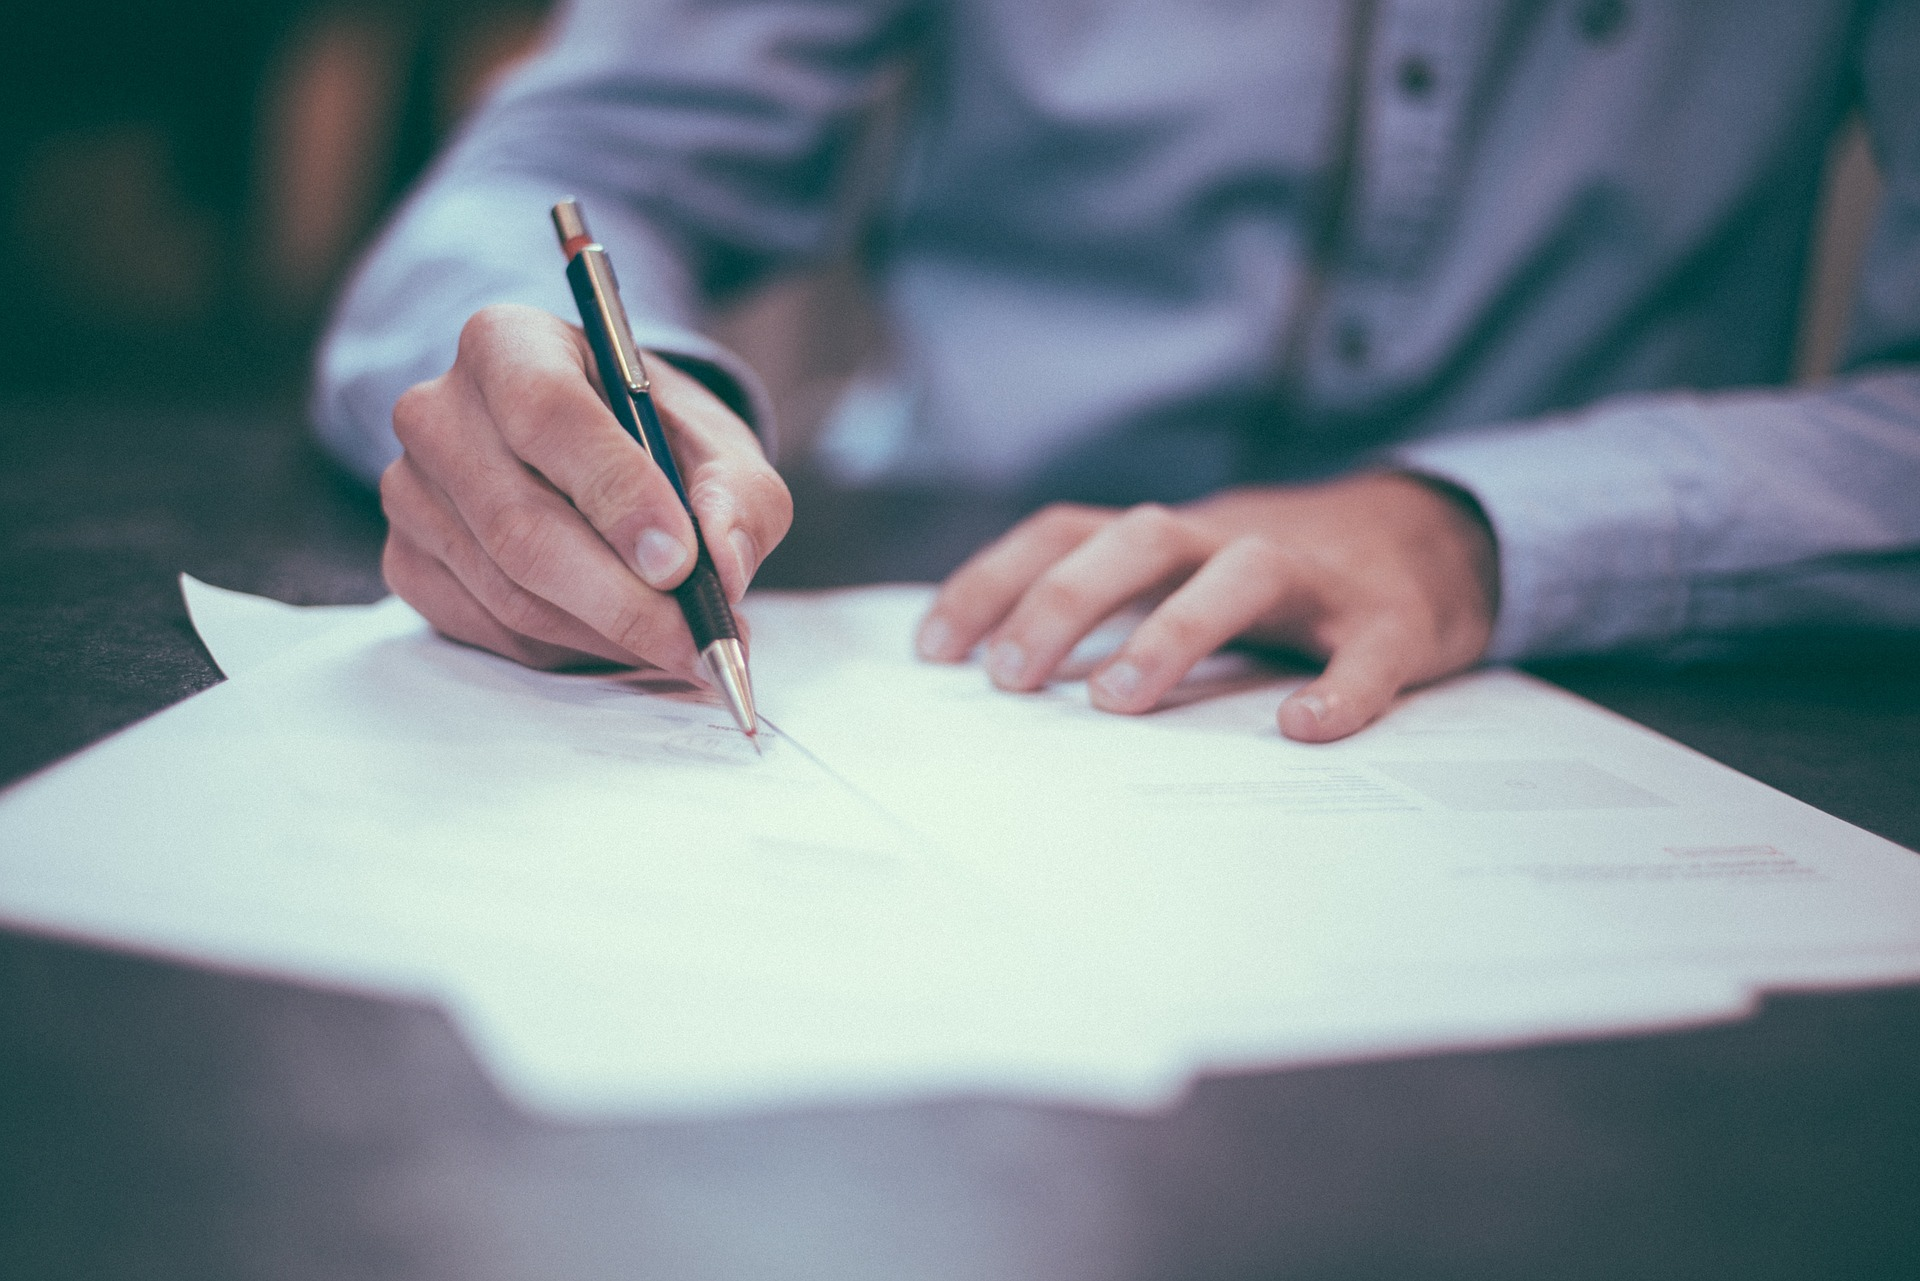 Photo of papers on desk with person writing on them